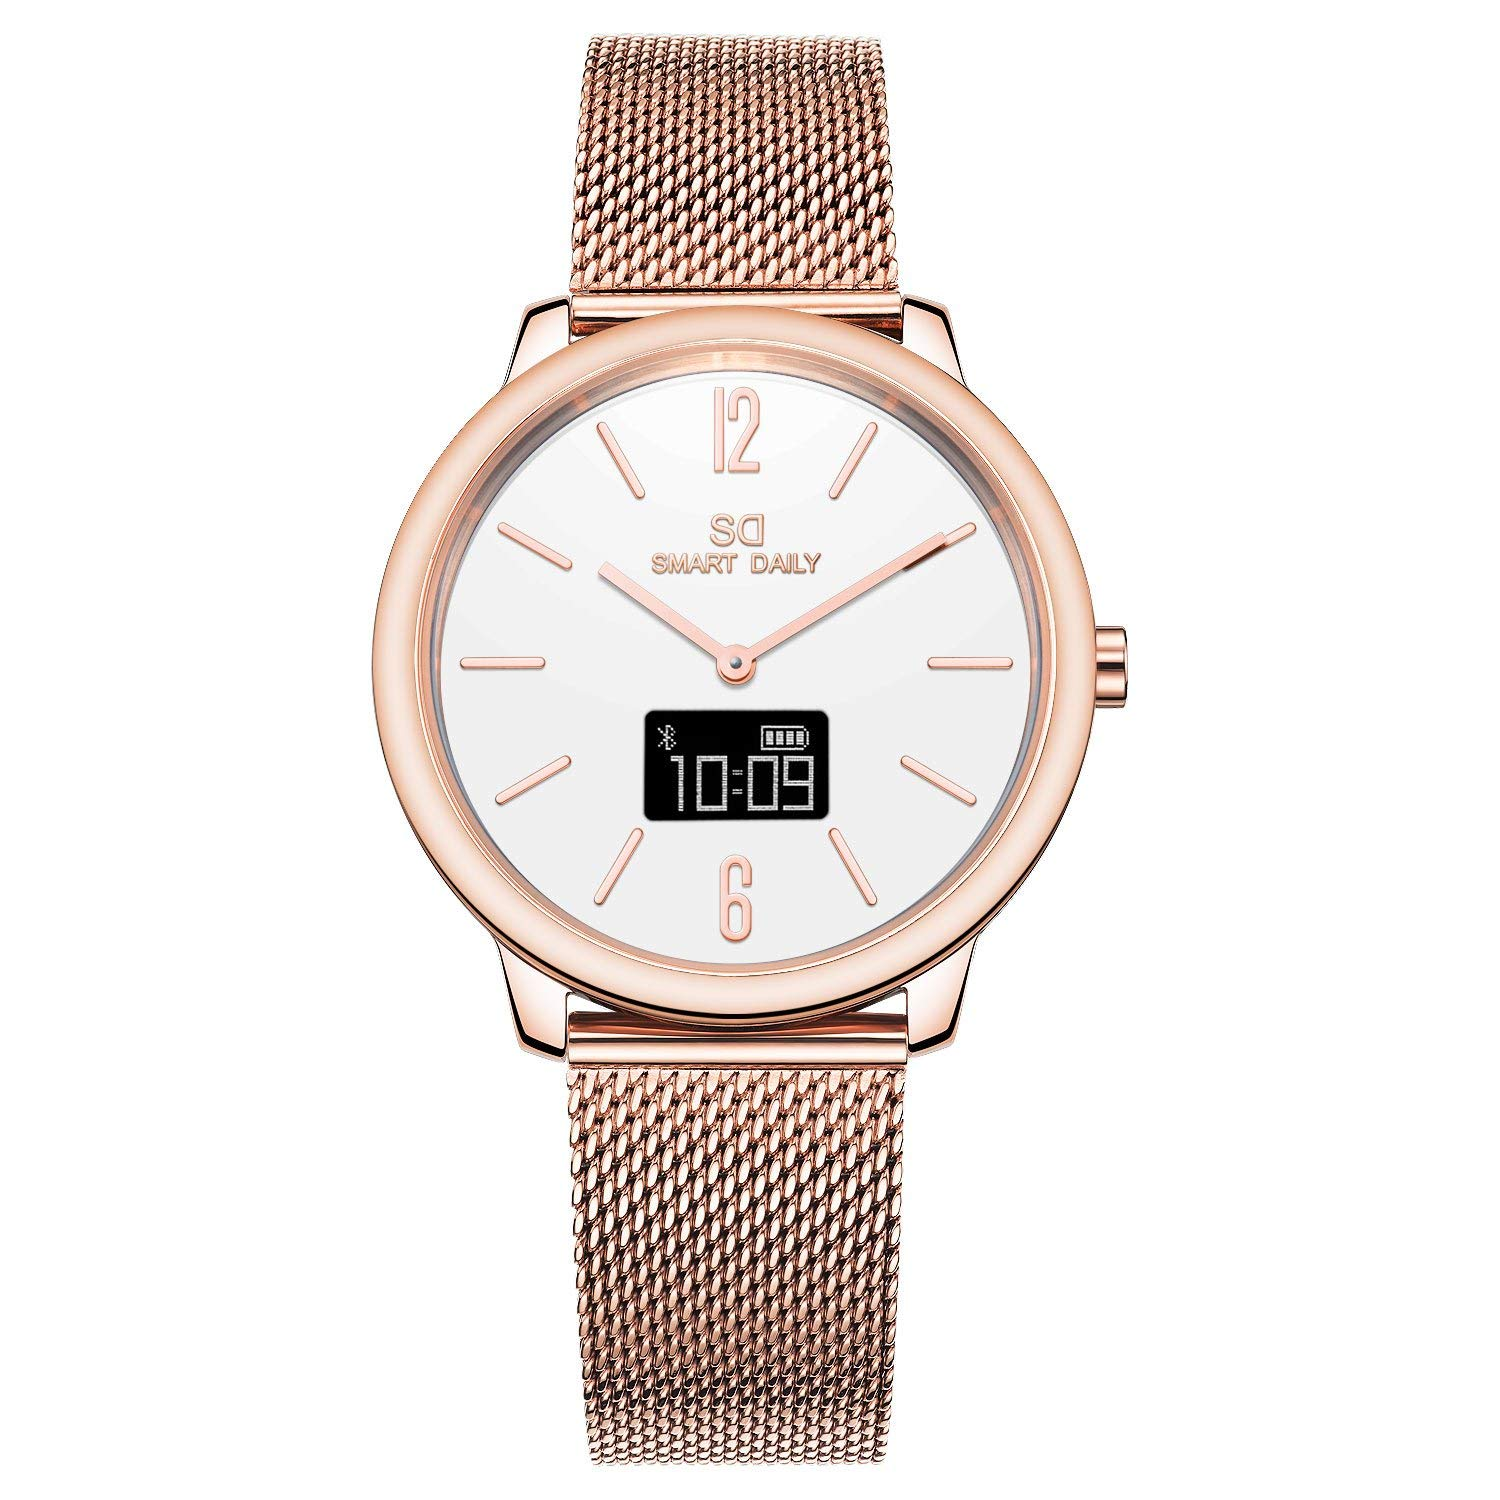 SD1242L(White/Mesh Band) Ladies Rose Gold Smart Watch,38mm, Bluetooth,Touchscreen, Time/Step/Distance/Calories Count, Stainless Steel case, 3atm Waterproof, Japan Quartz, OLED, App for IOS and Android